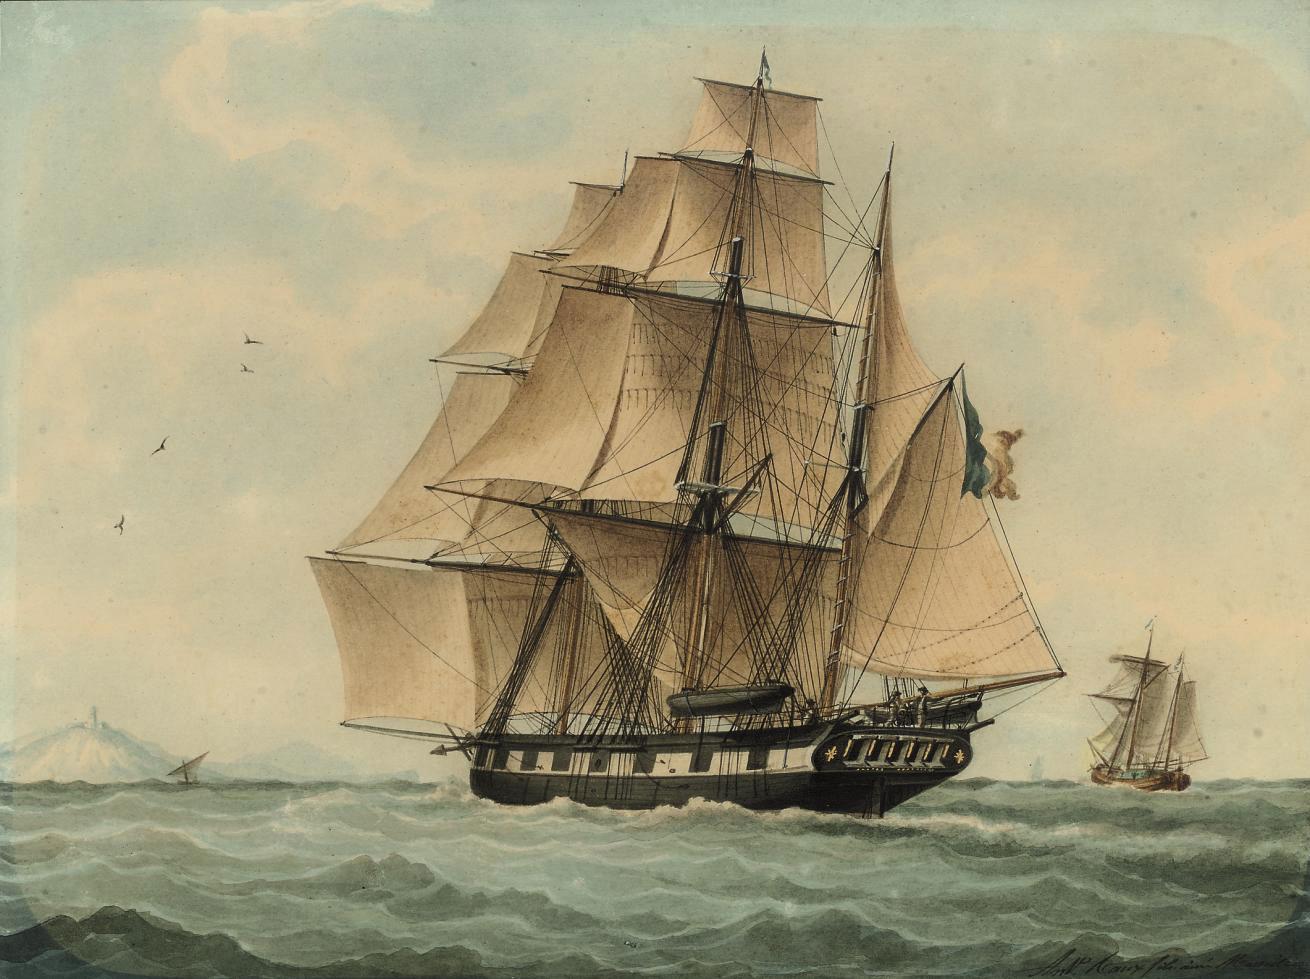 A French barque sailing to windward in the Mediterranean